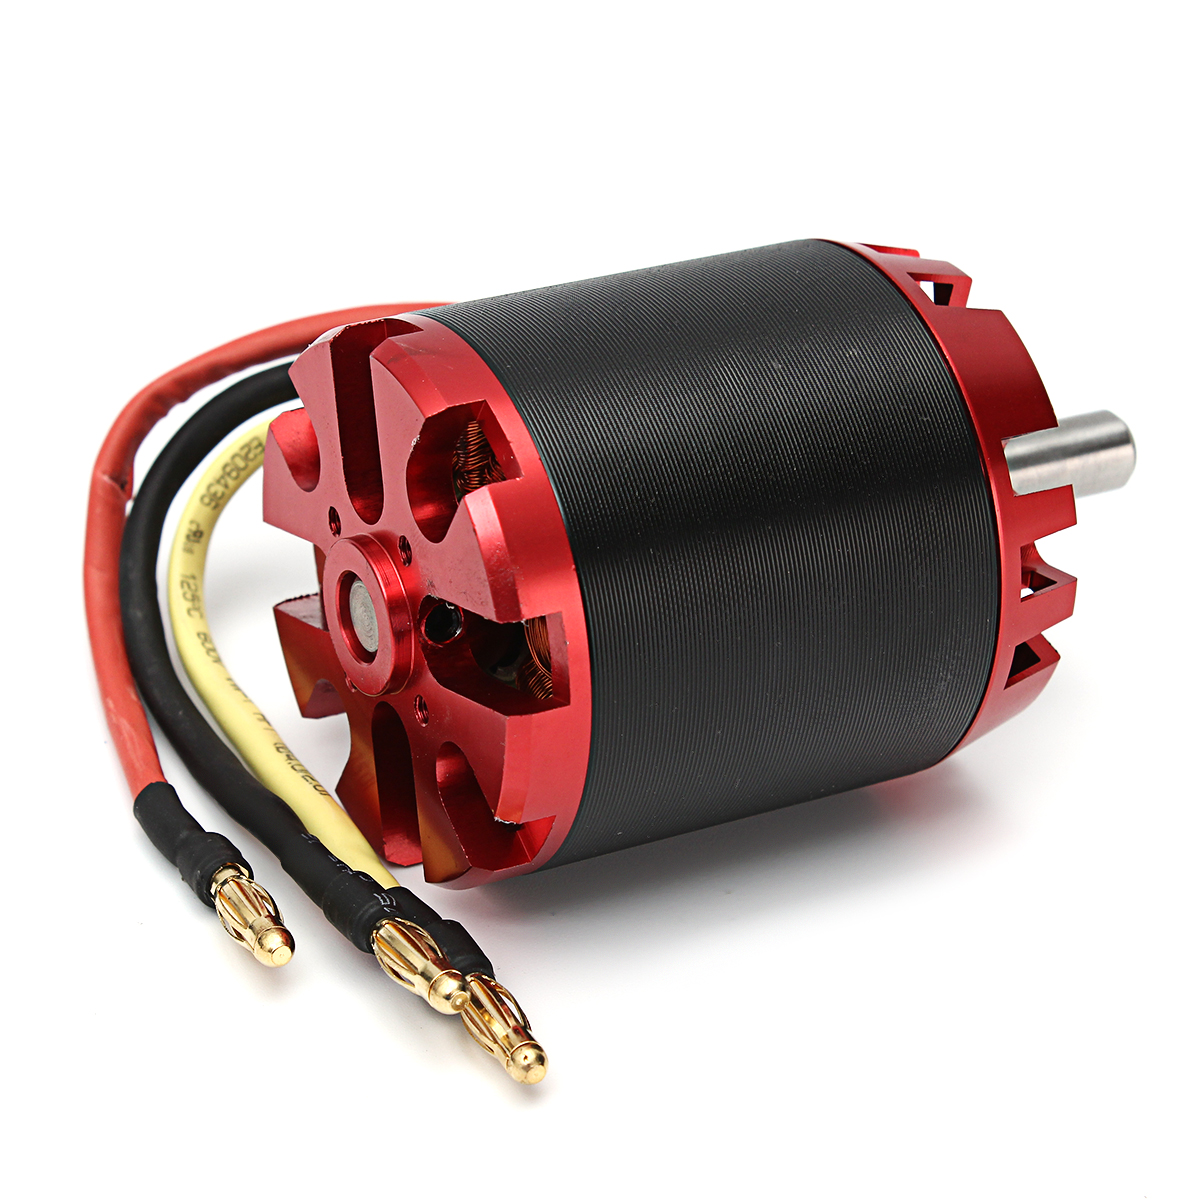 N5065 400KV 1820W Outrunner Brushless Motor For Electric Scooter Skate Board DIY Kit